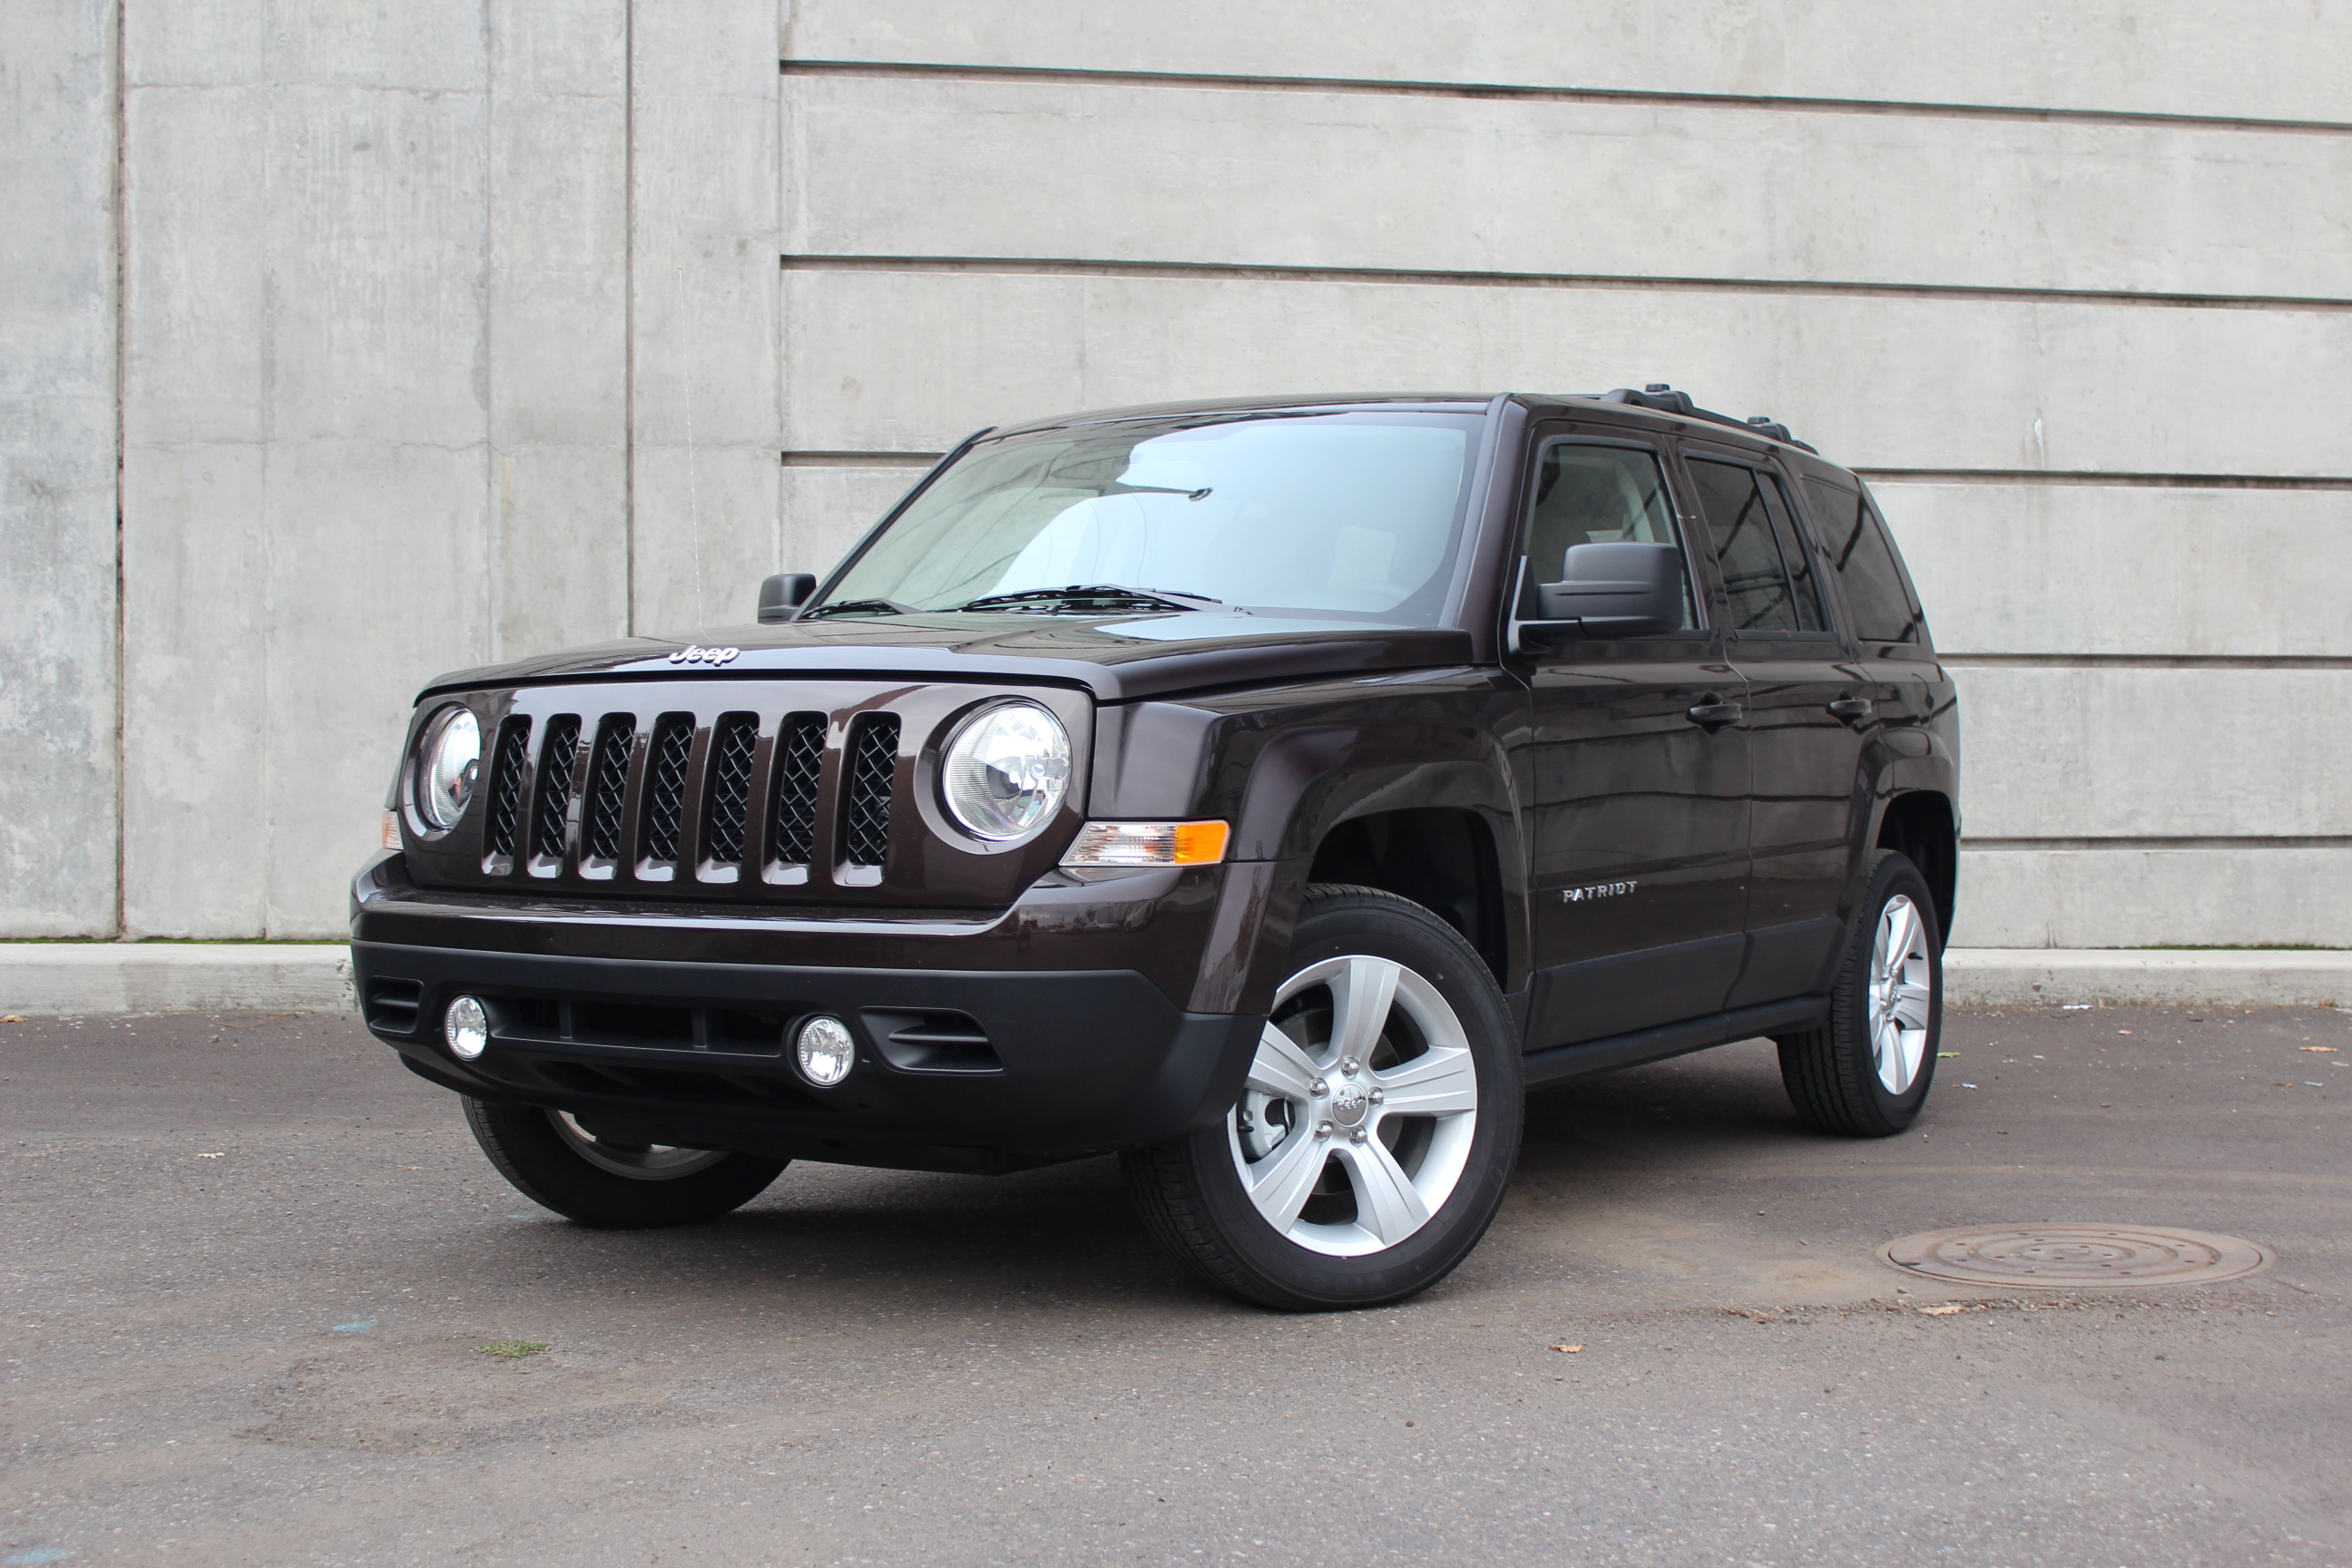 2014 Jeep Patriot Latitude Does It Drive Better Without